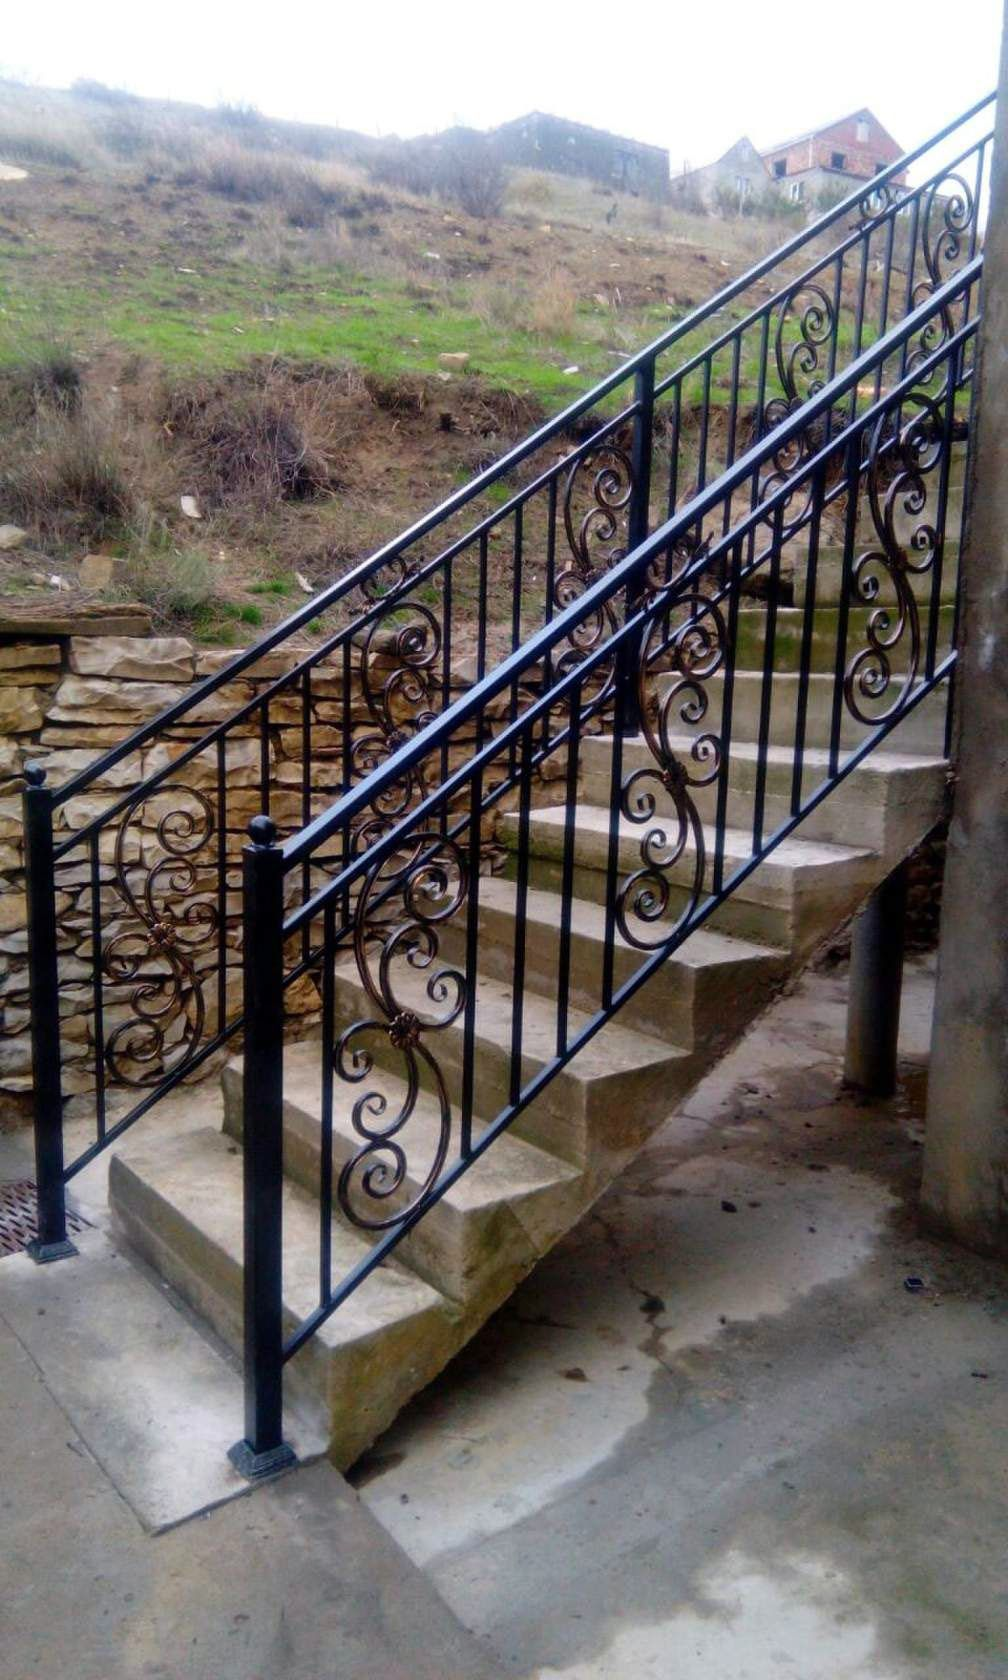 The Next Level 14 Stair Railings To Elevate Your Home Design | Galvanized Pipe Stair Railing | Garden | Industrial | Metal | Used Deck Railing | Interior